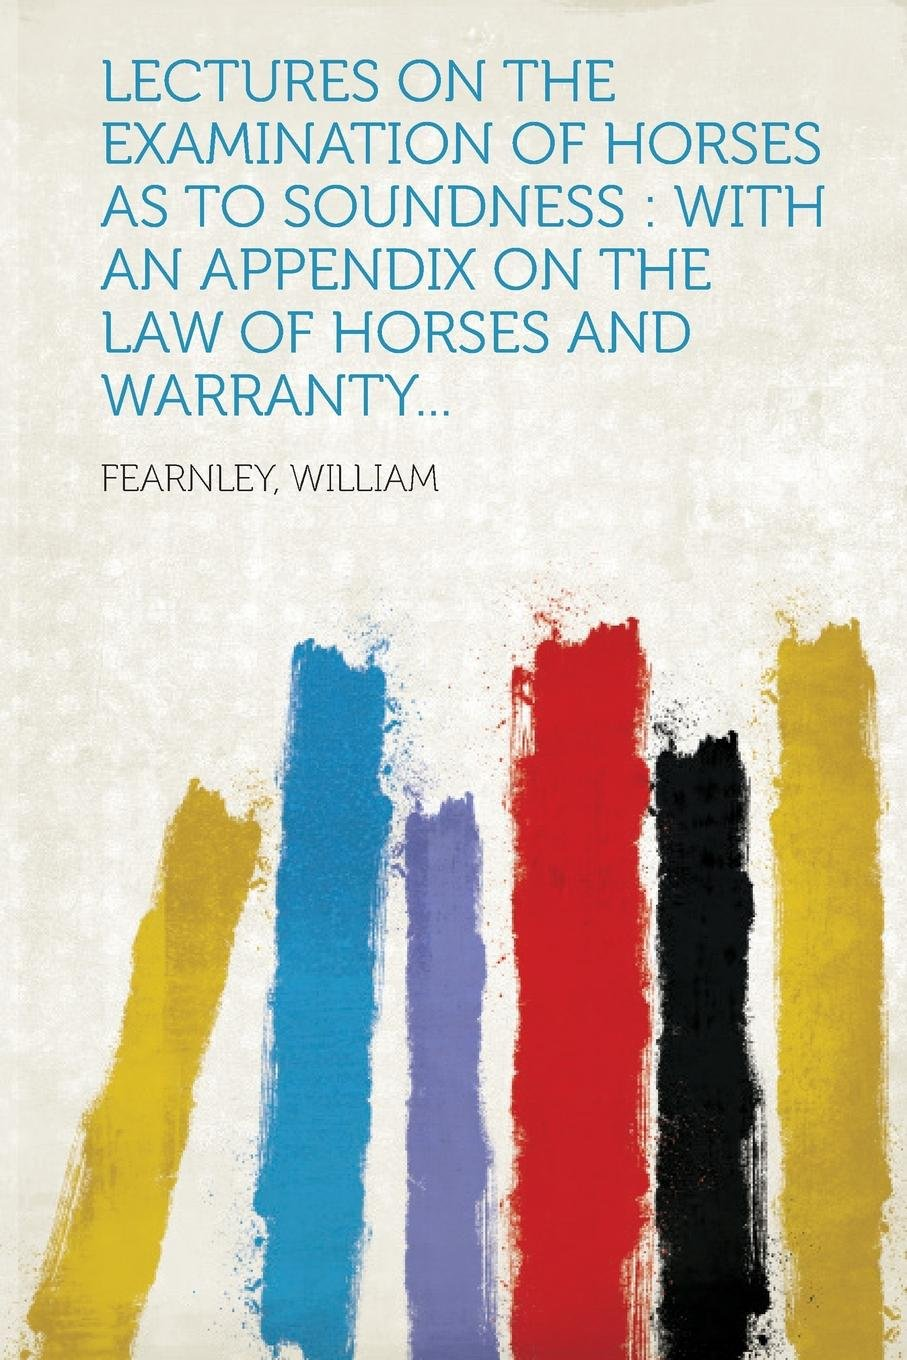 Lectures on the Examination of Horses as to Soundness: With an Appendix on the Law of Horses and Warranty. pdf